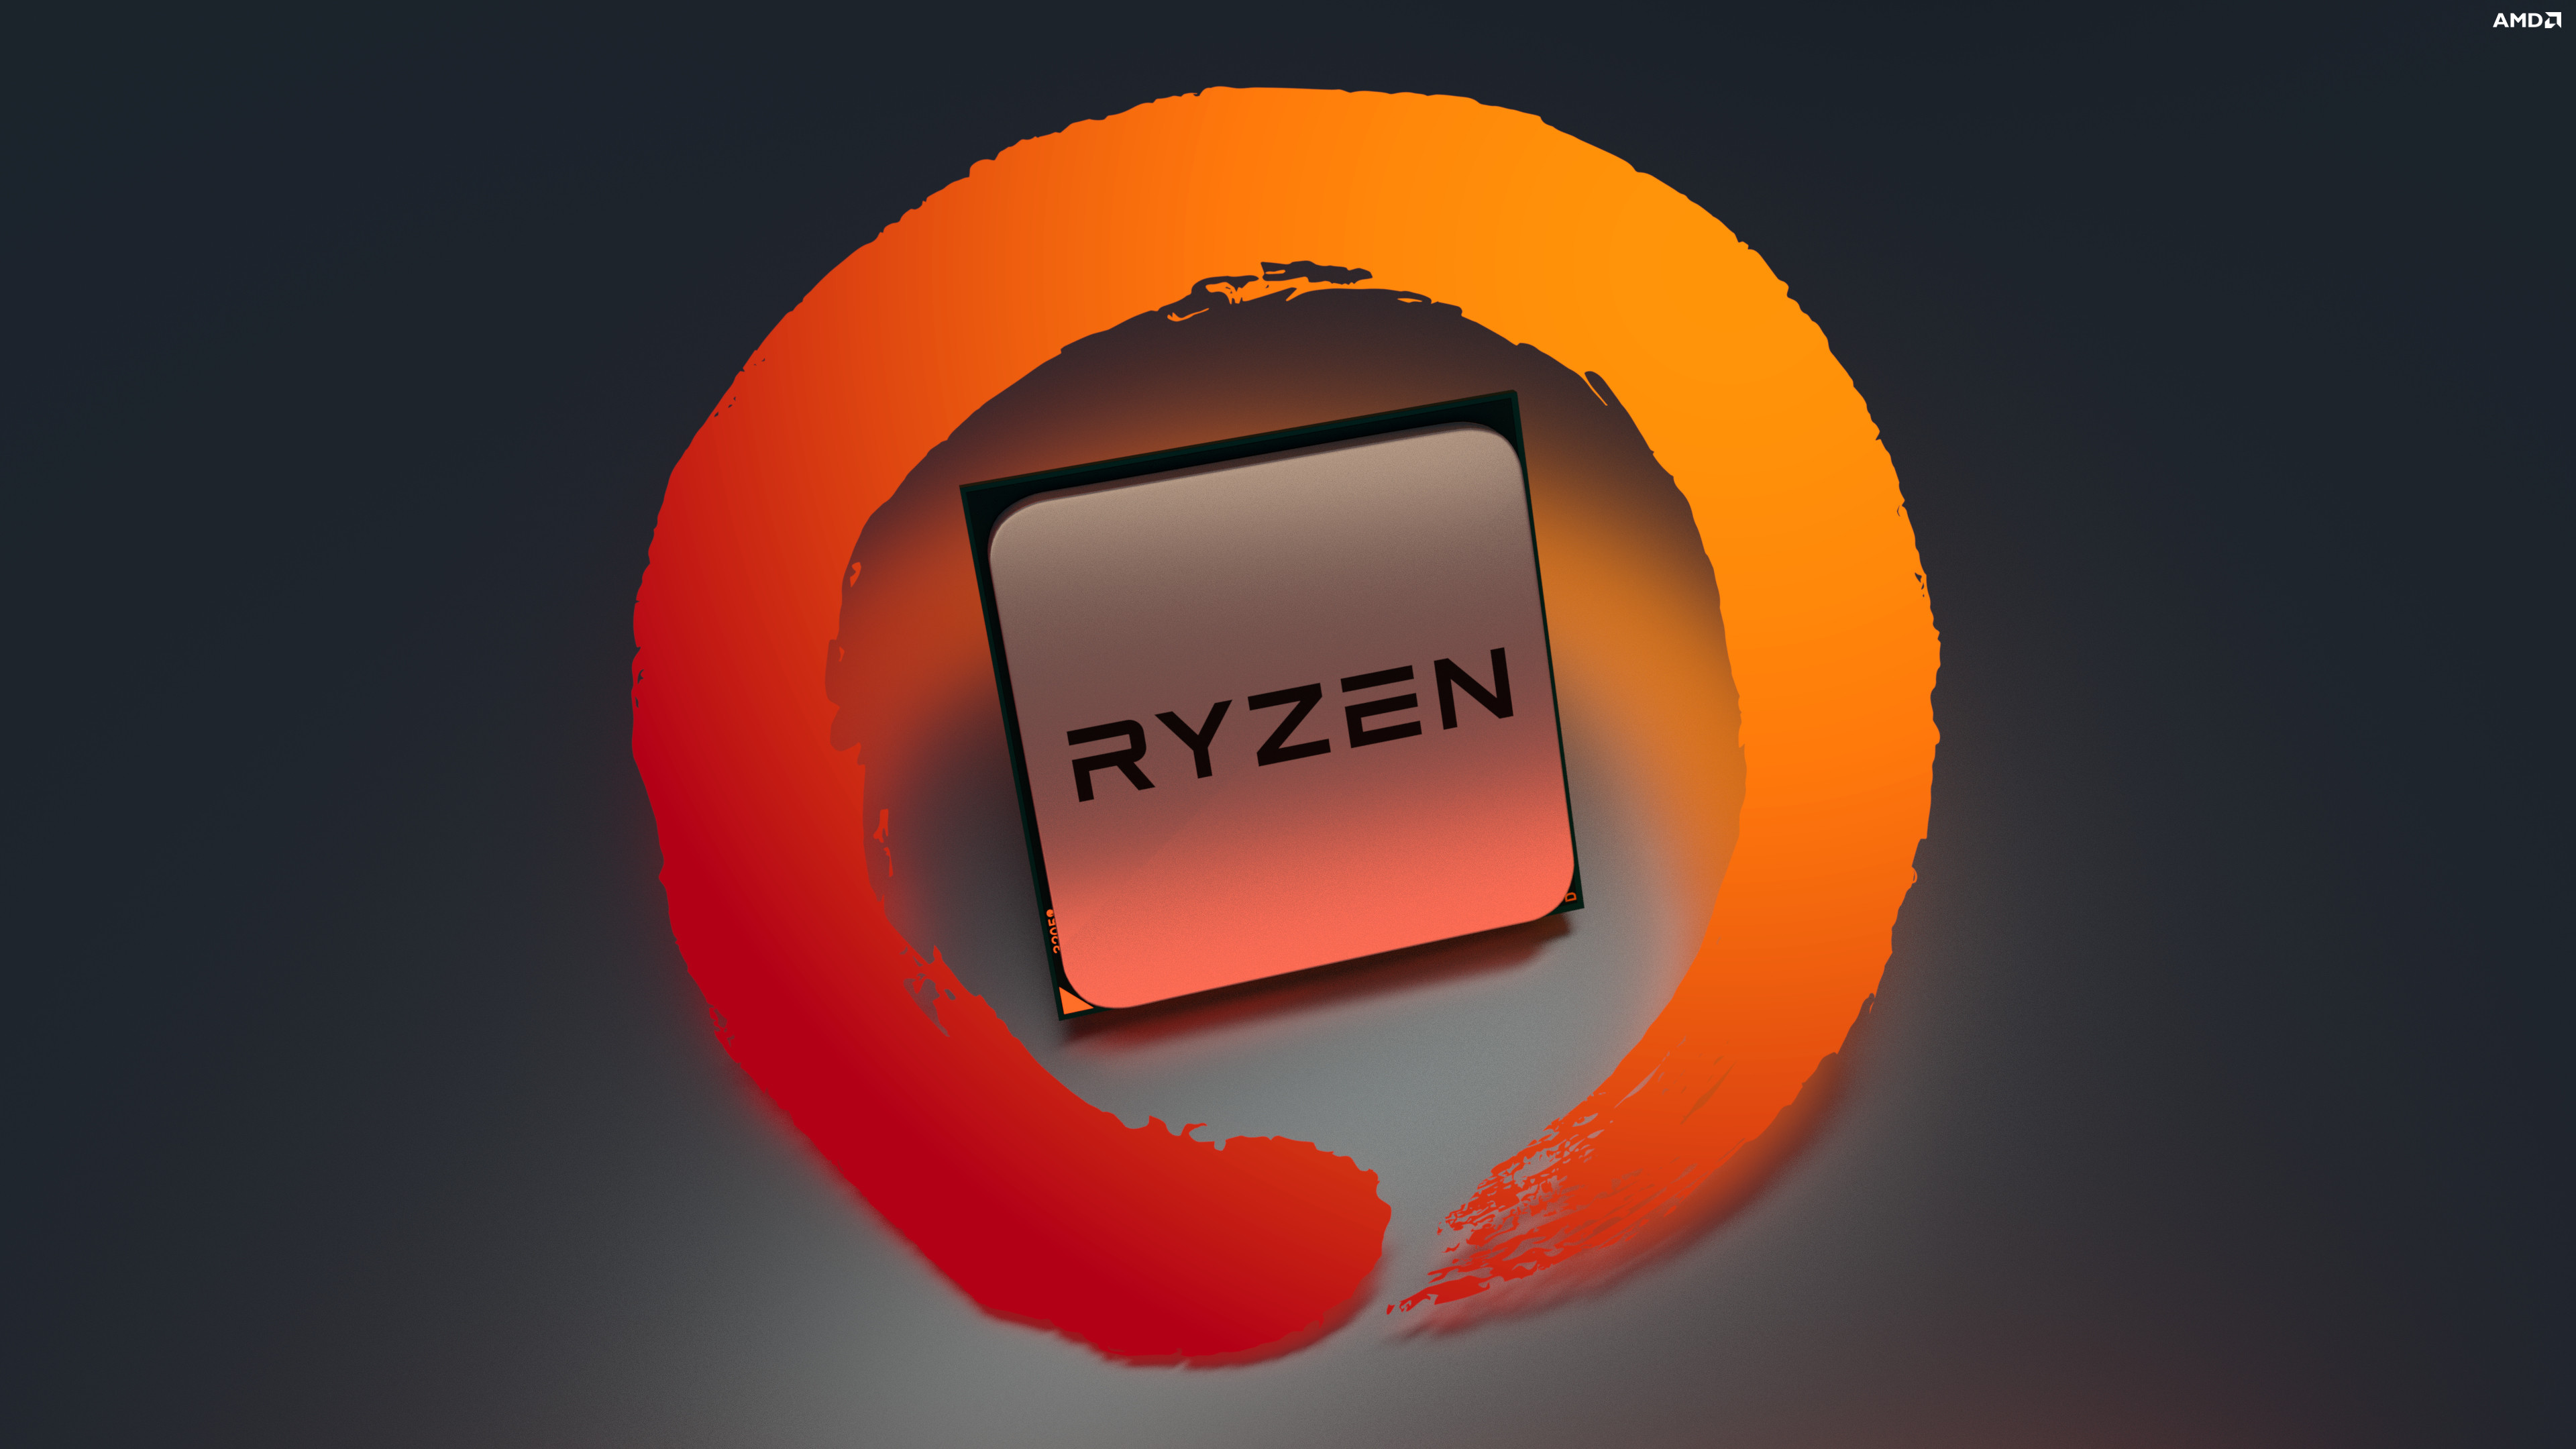 Res: 3840x2160, Photo4K Ryzen Wallpaper (Rendered by me) ...